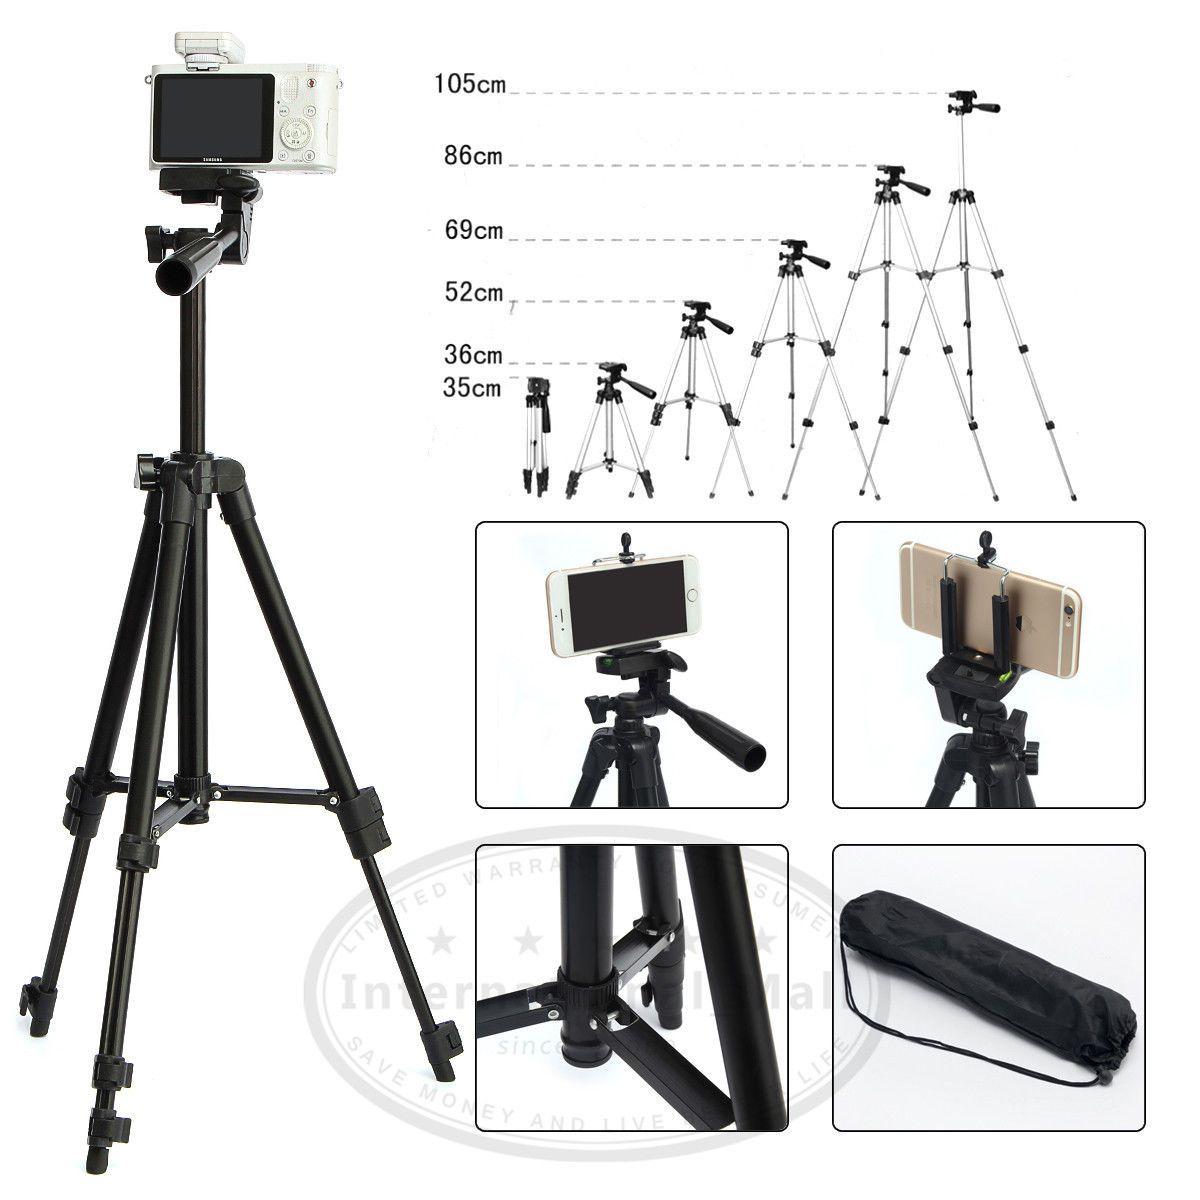 competitive price 8462d 50a0e Professional Telescopic Tripod Stand Holder for iPhone 6 Plus ...